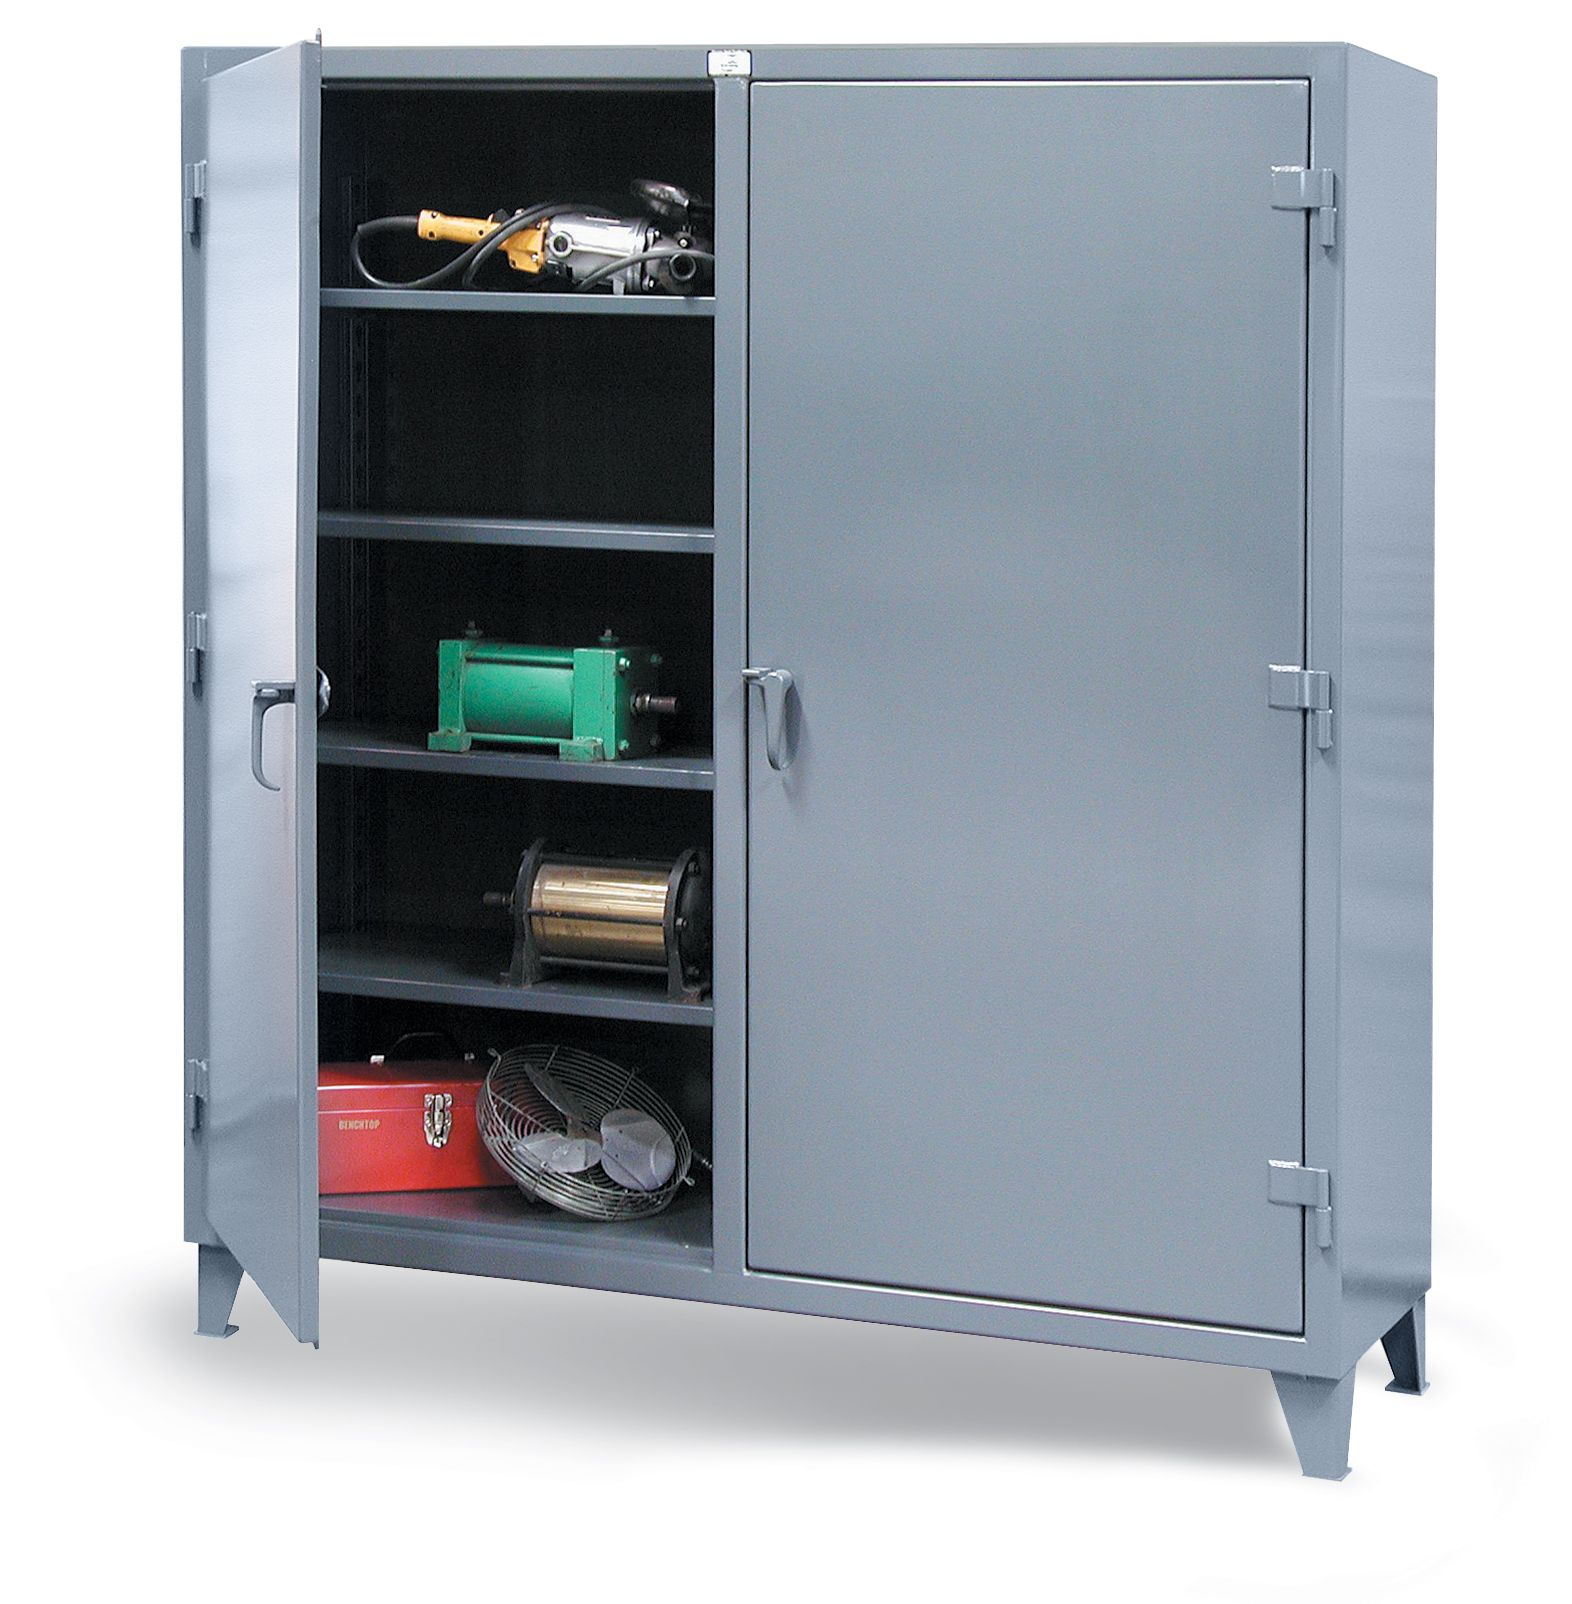 Double Shift Cabinet Our Heavy Duty 12 Gauge When You Need To Lock Up Half The While Getting Into Other